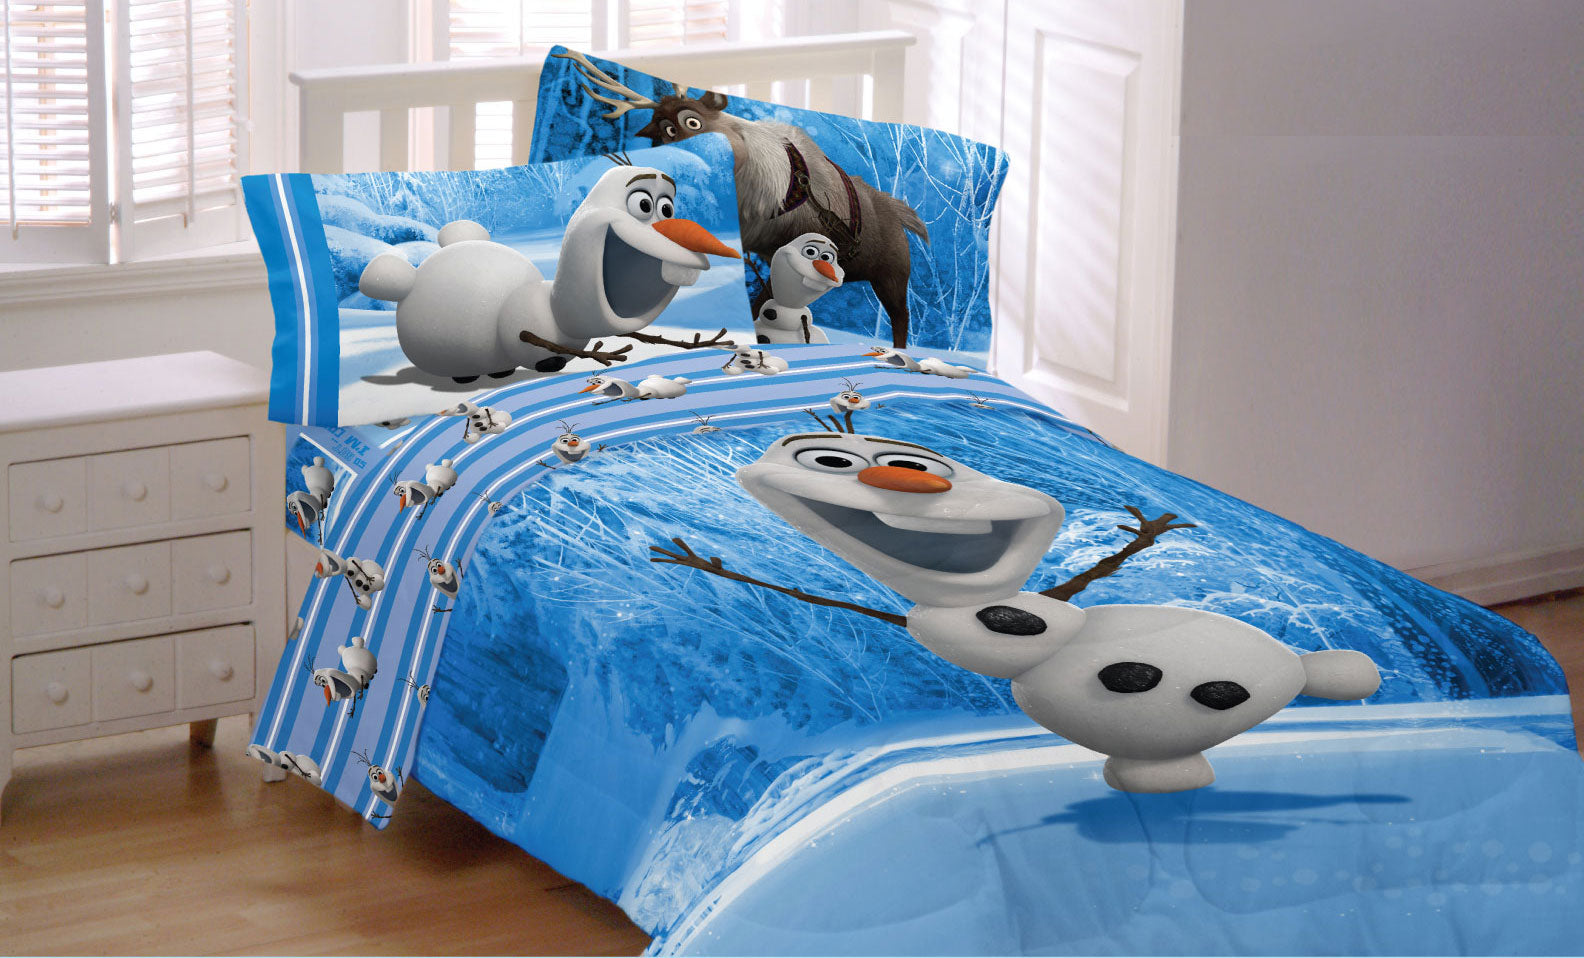 Frozen Made of Snow Bed Comforter - oBedding.com